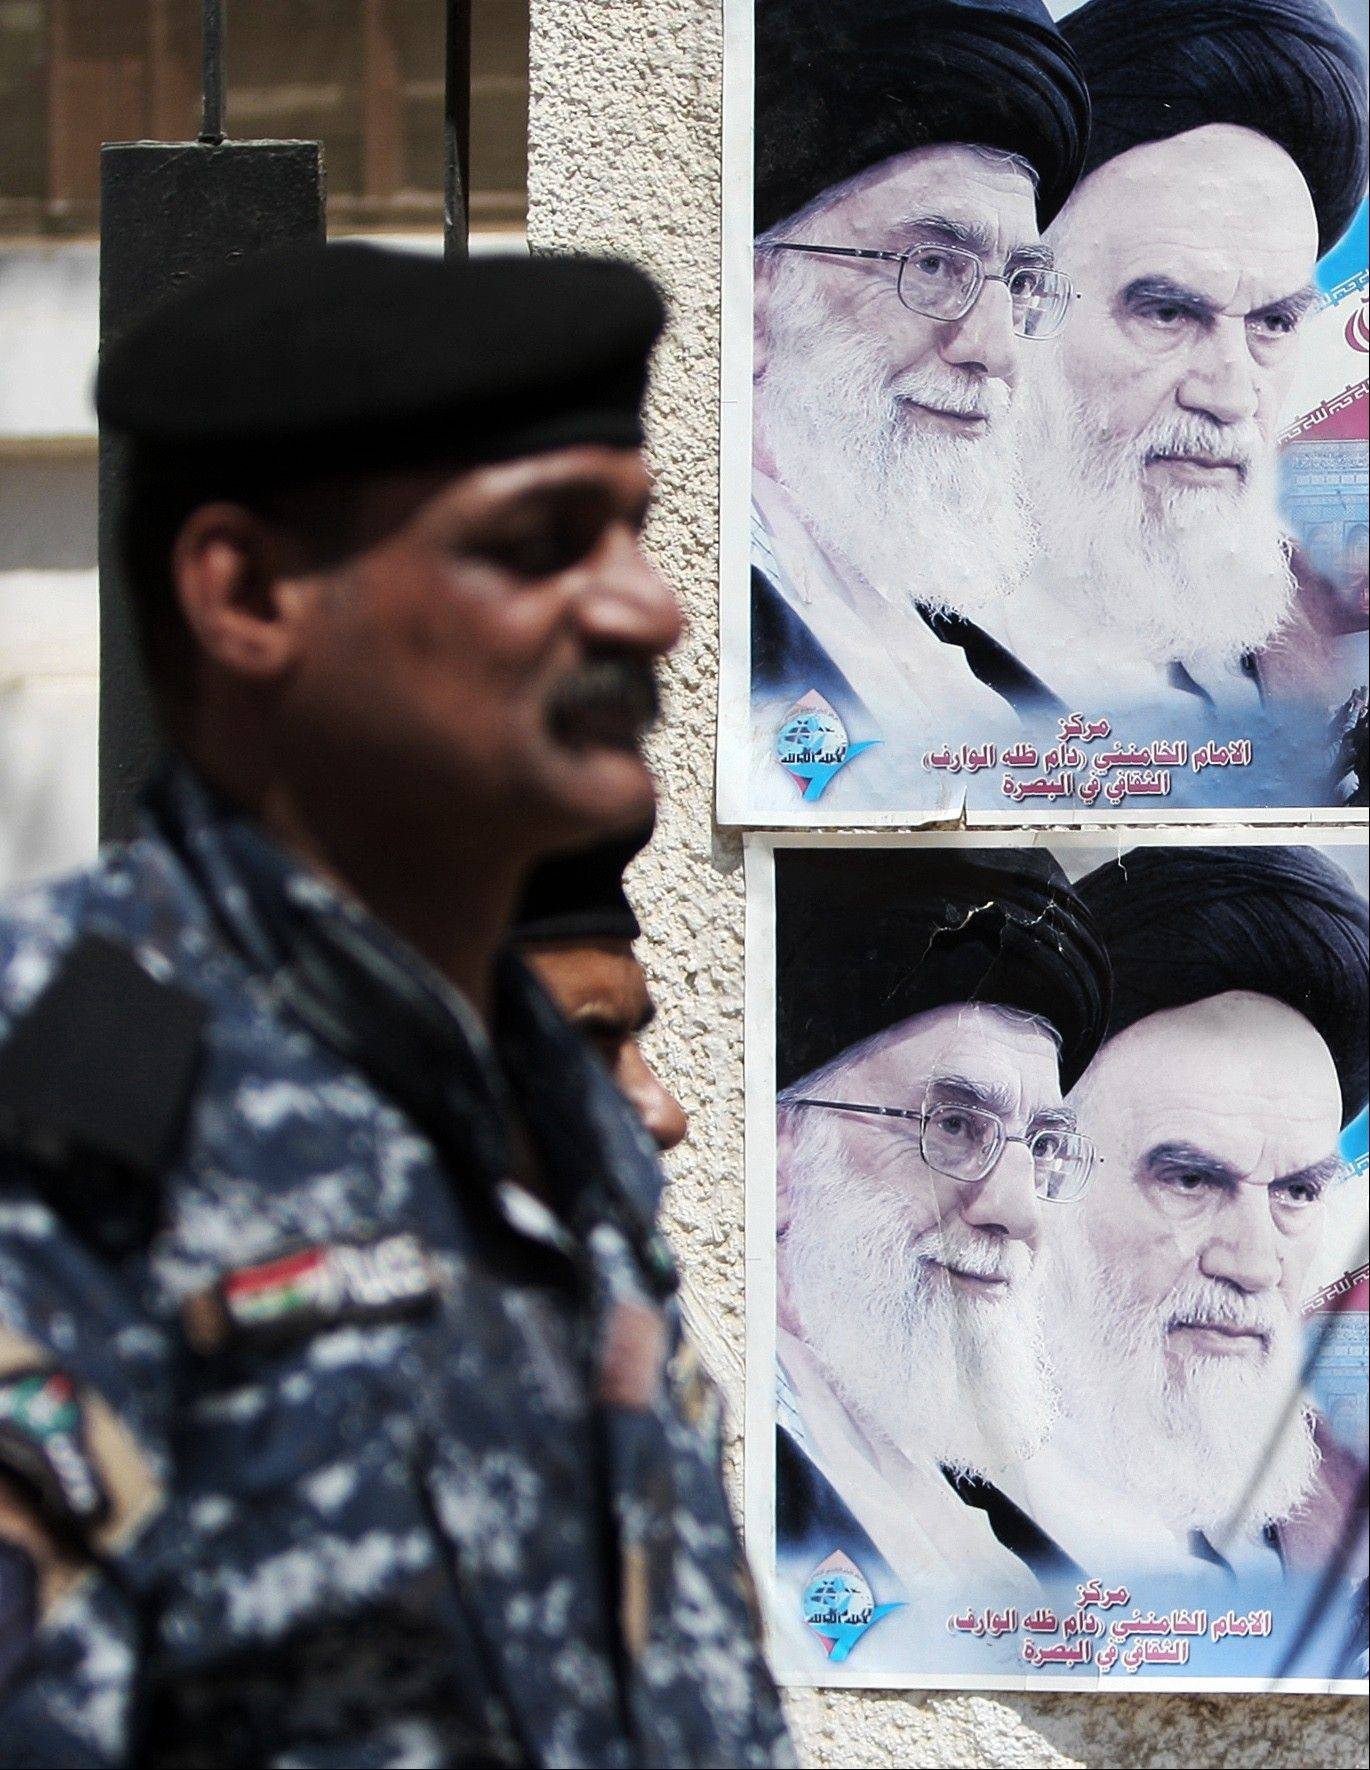 An Iraqi soldier stands guard next to a poster depicting late Iran's spiritual leaders Ayatollah Khomeini, right, and Ayatollah Khamenei, left, in Basra, 340 miles southeast of Baghdad, Iraq. After years of growing influence, a new sign of Iran�s presence in Iraq has hit the streets. Thousands of signs, that is, depicting Iran's supreme leader gently smiling to a population once mobilized against the Islamic